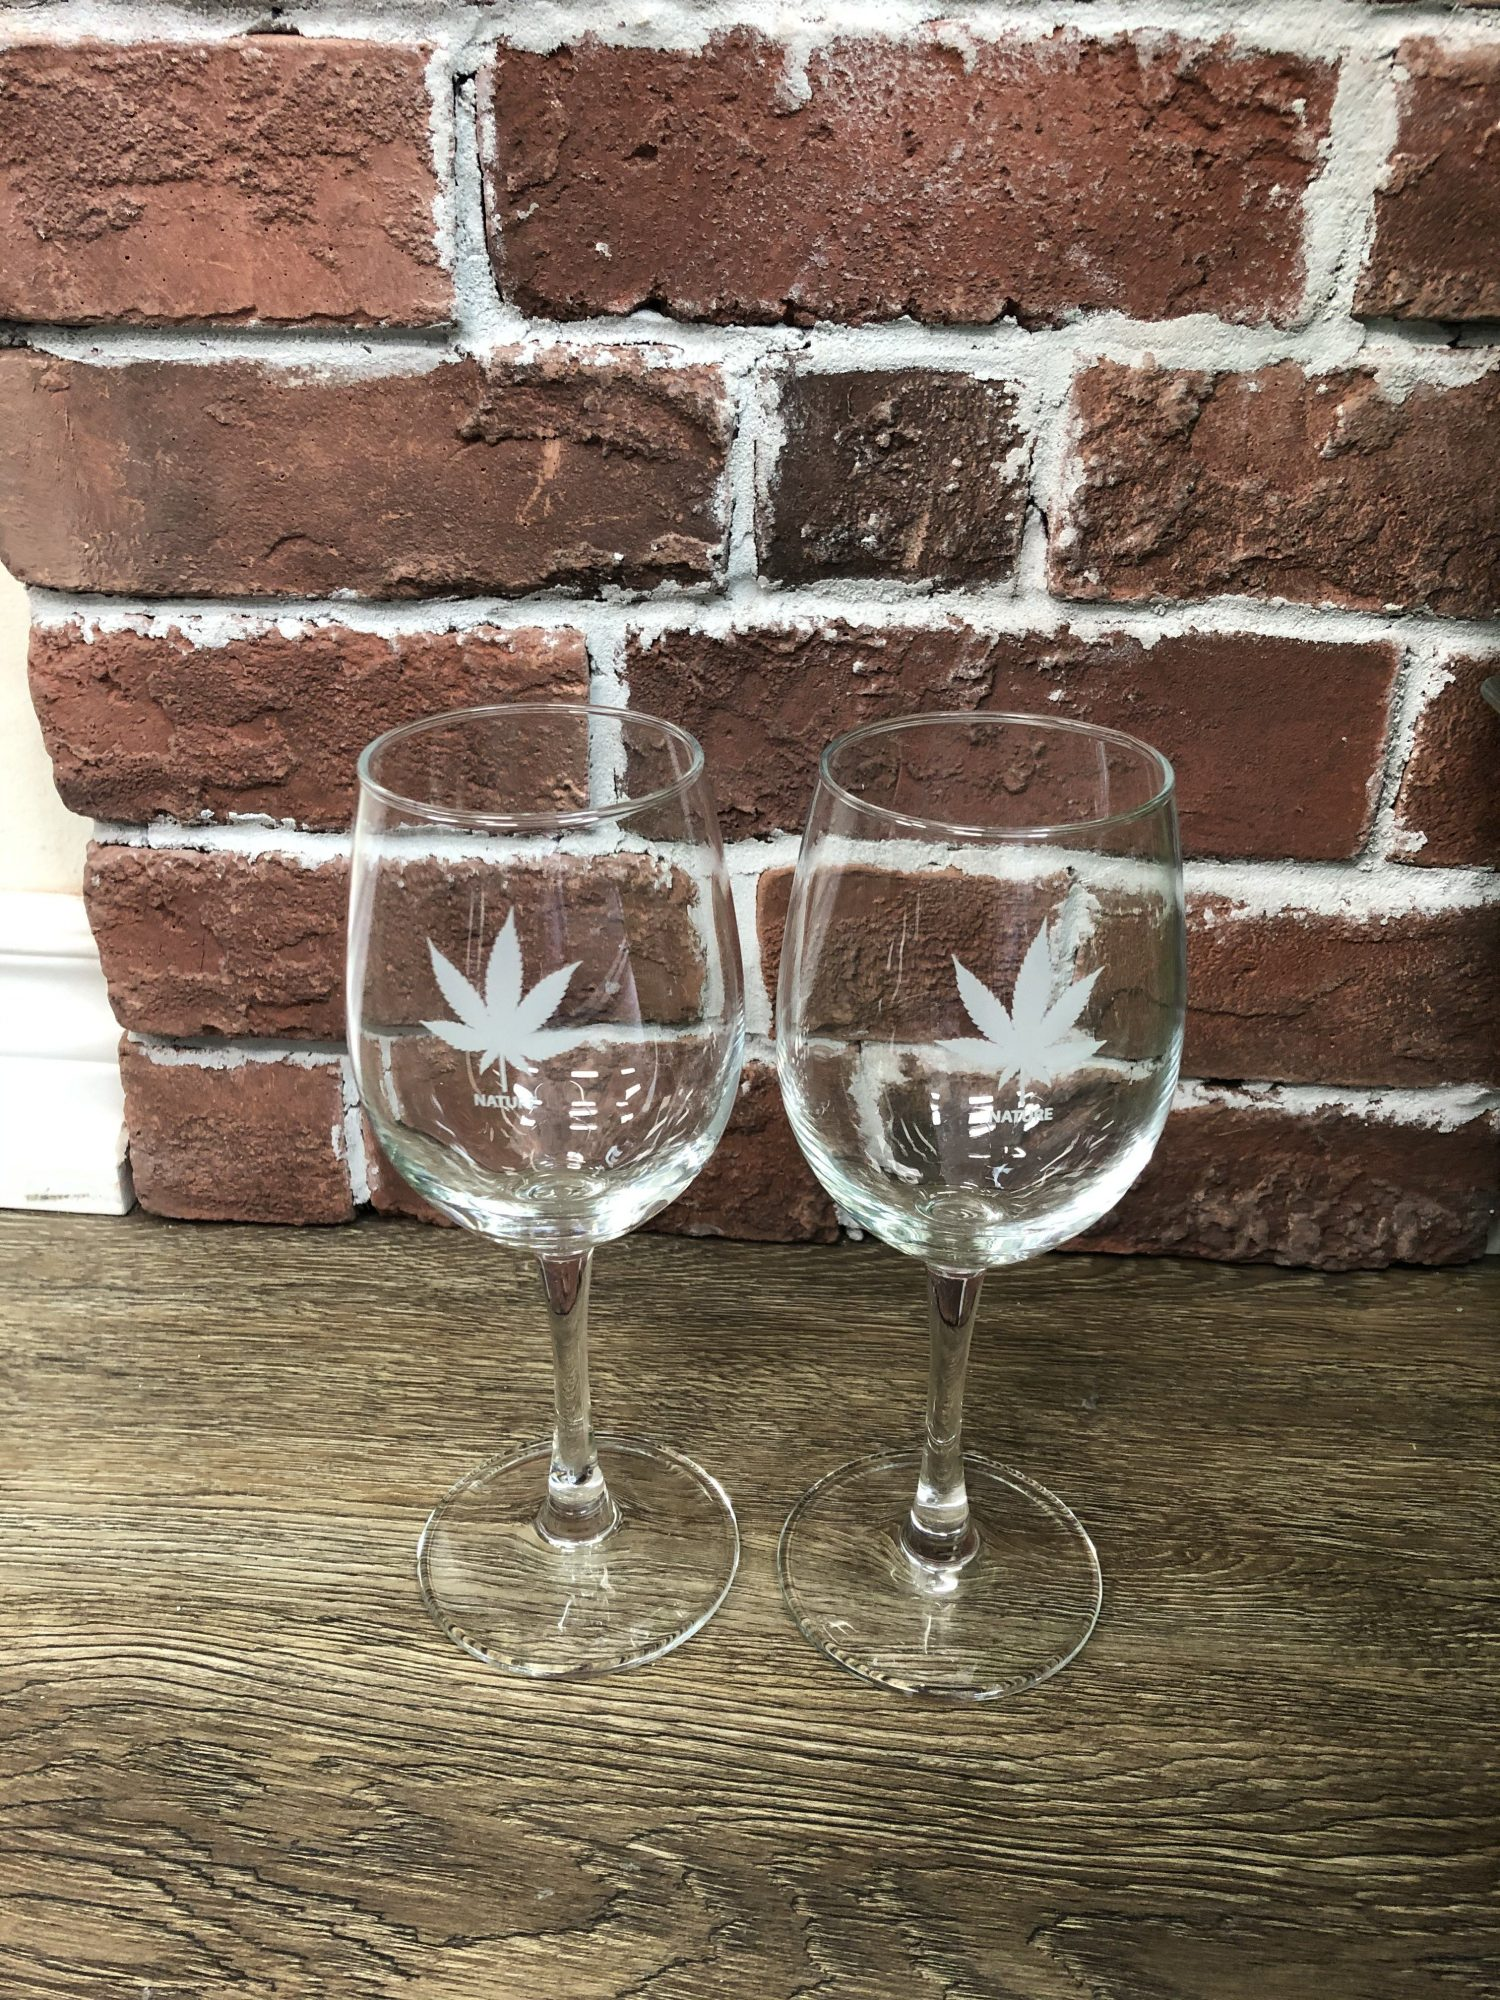 Classic cannabis-themed wine glasses